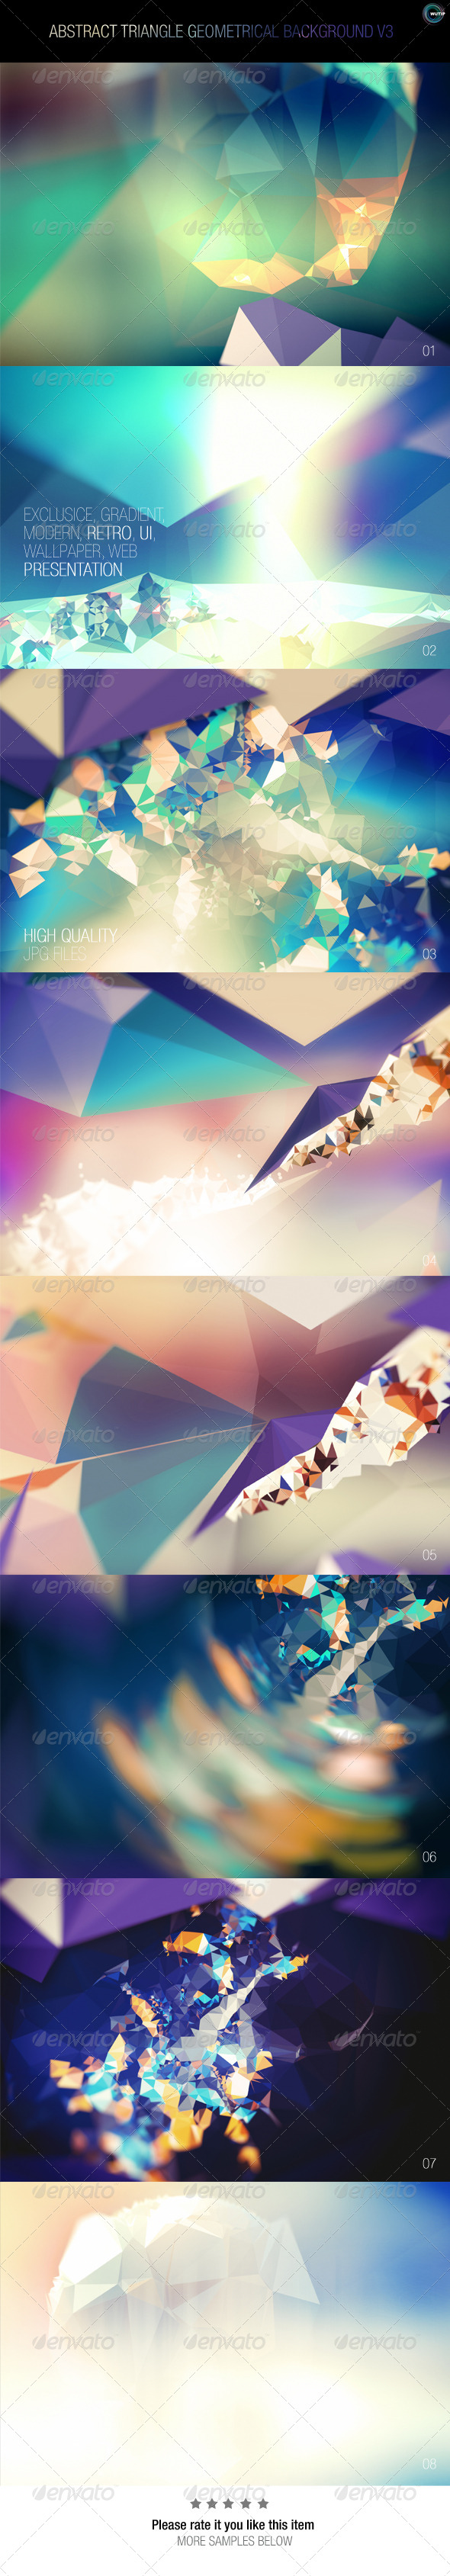 GraphicRiver Abstract Triangle Geometrical Background V3 7905689